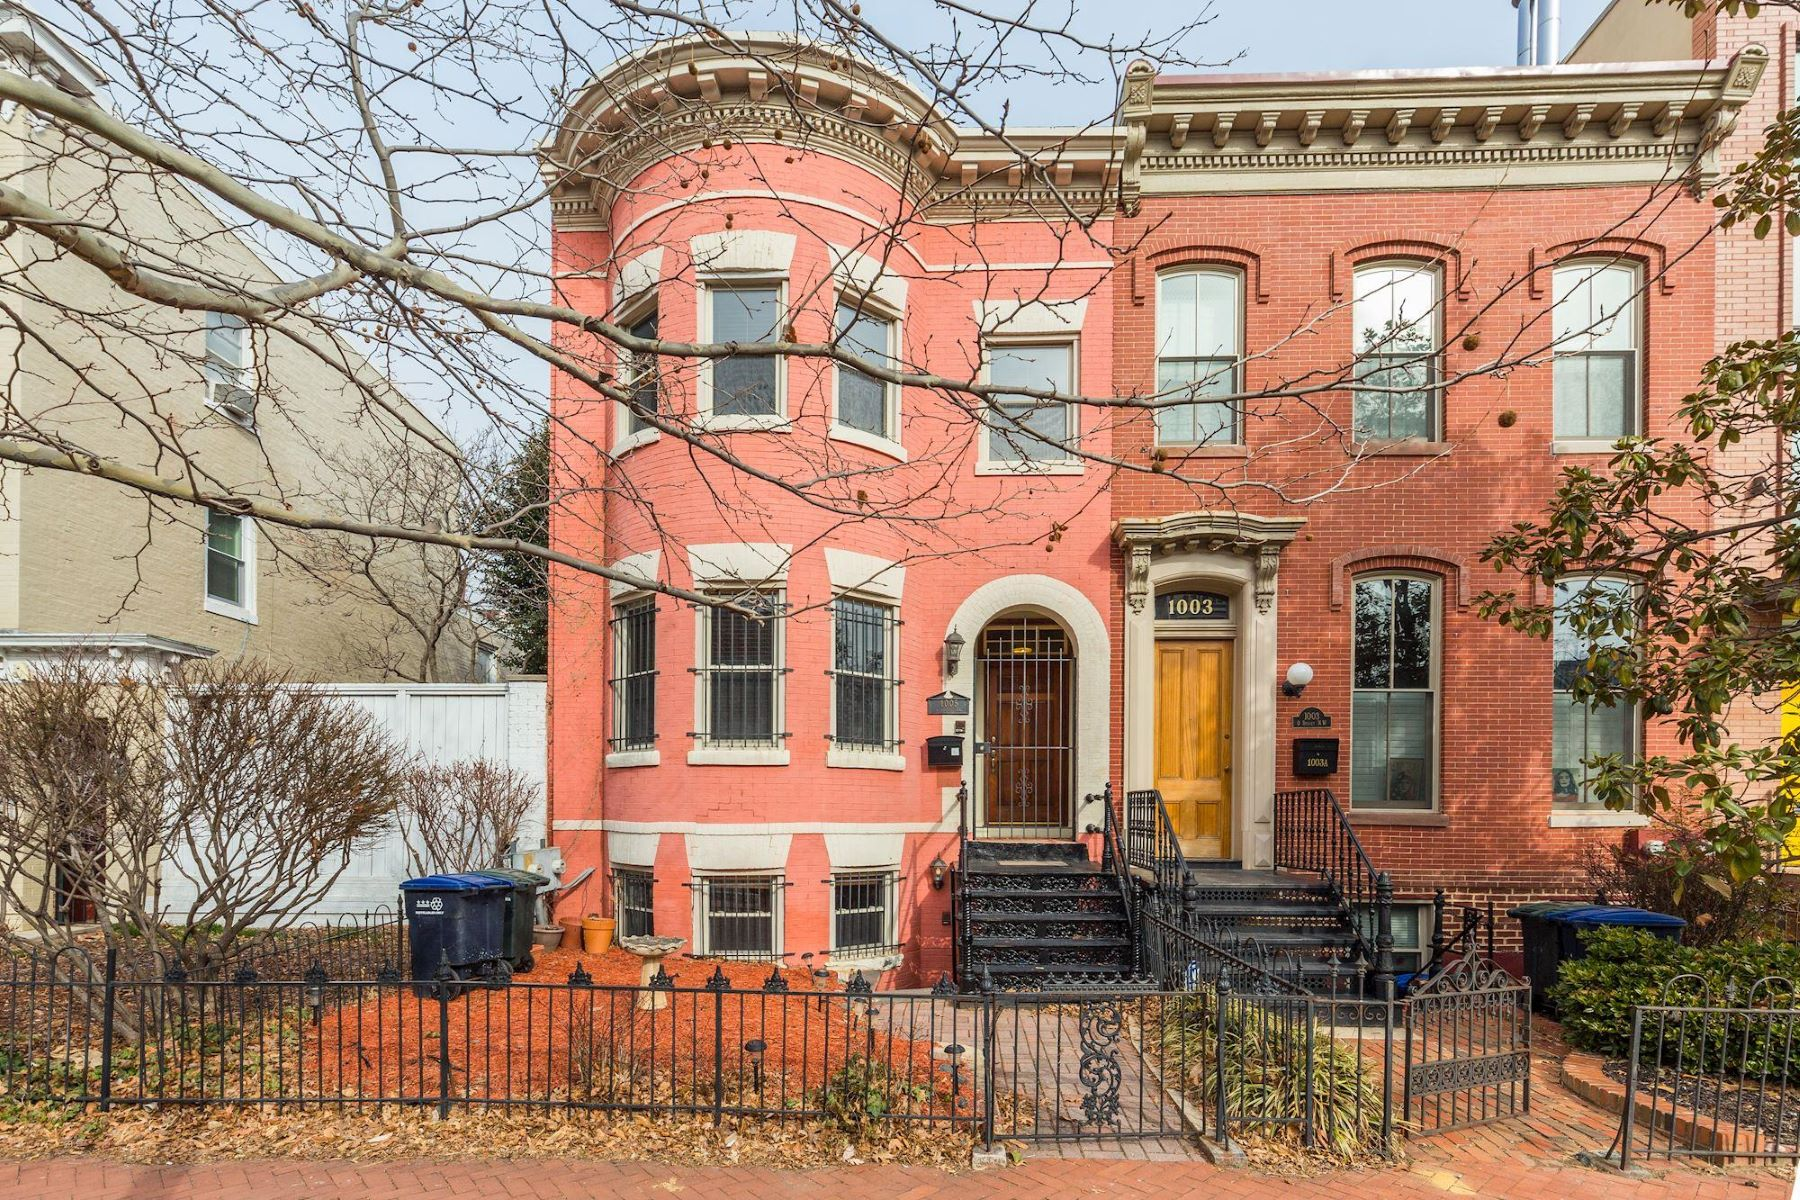 Single Family Home for Sale at 1005 O St Nw Washington, District Of Columbia, 20001 United States